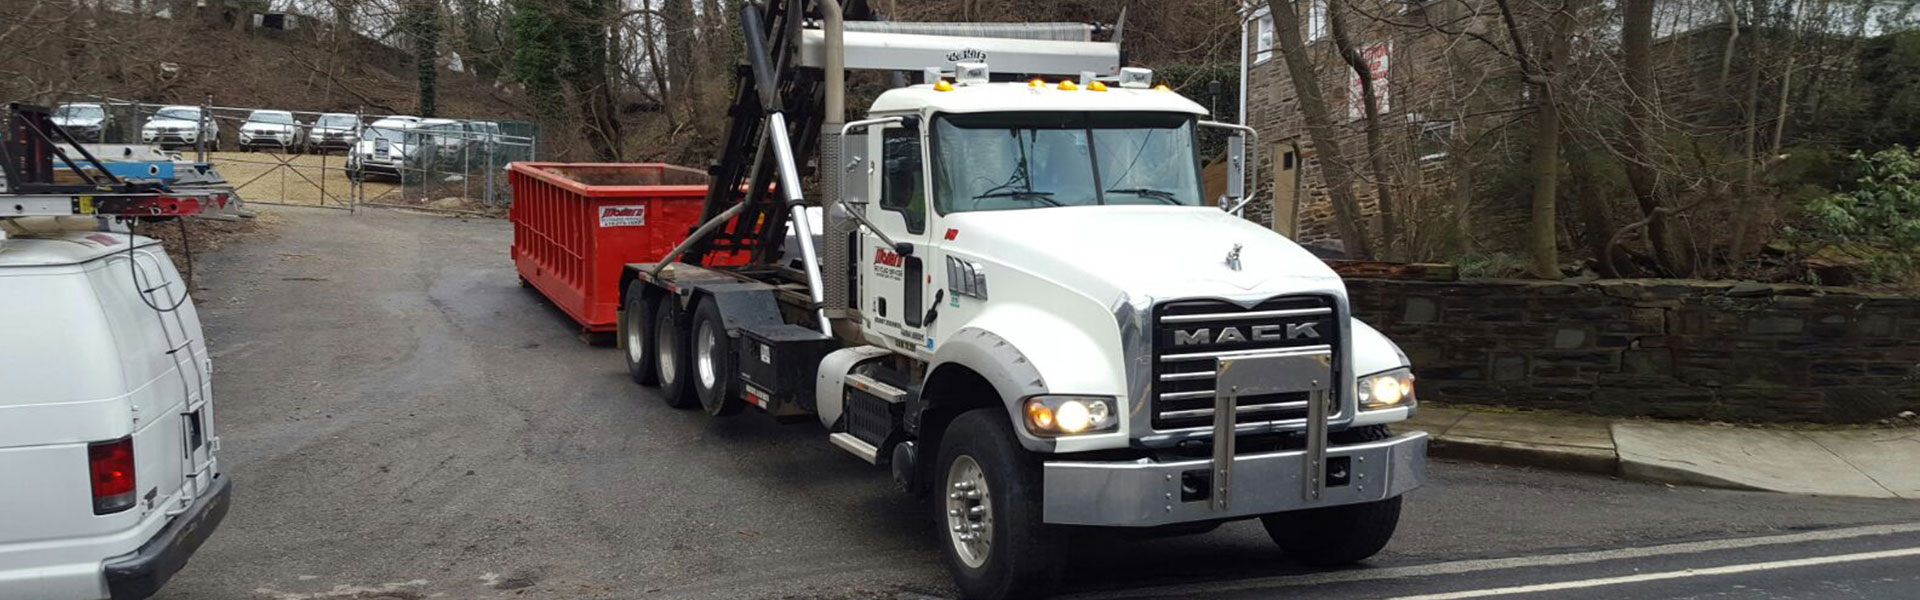 Modern Recycling Services - Norristown Dumpster Rental - Norristown Scrap Metal